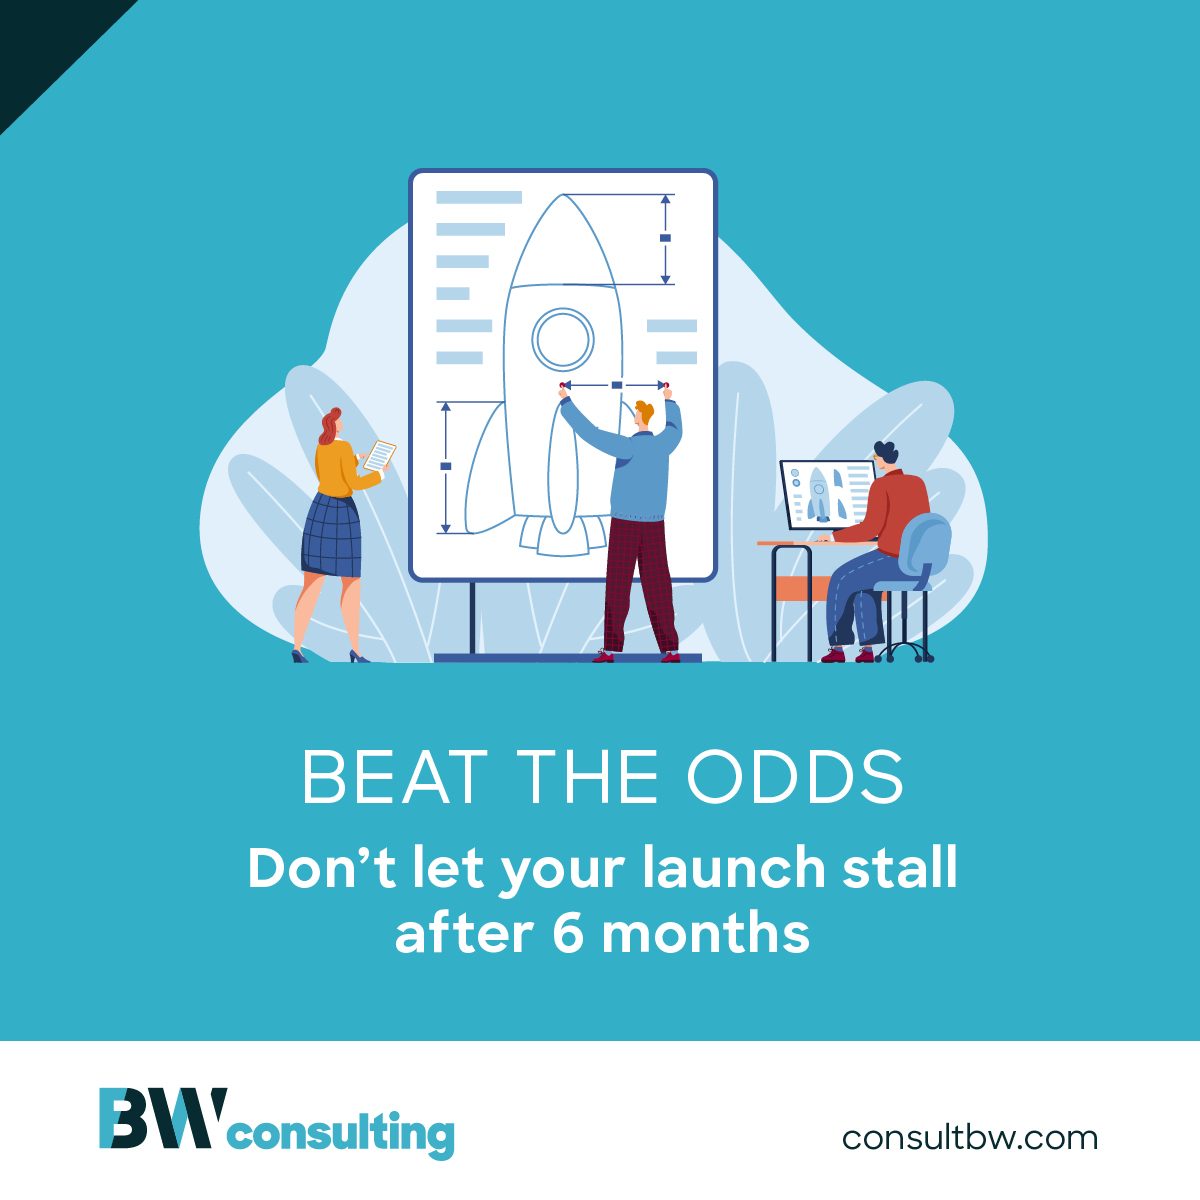 Beat the odds: Don't let your launch stall after 6 months